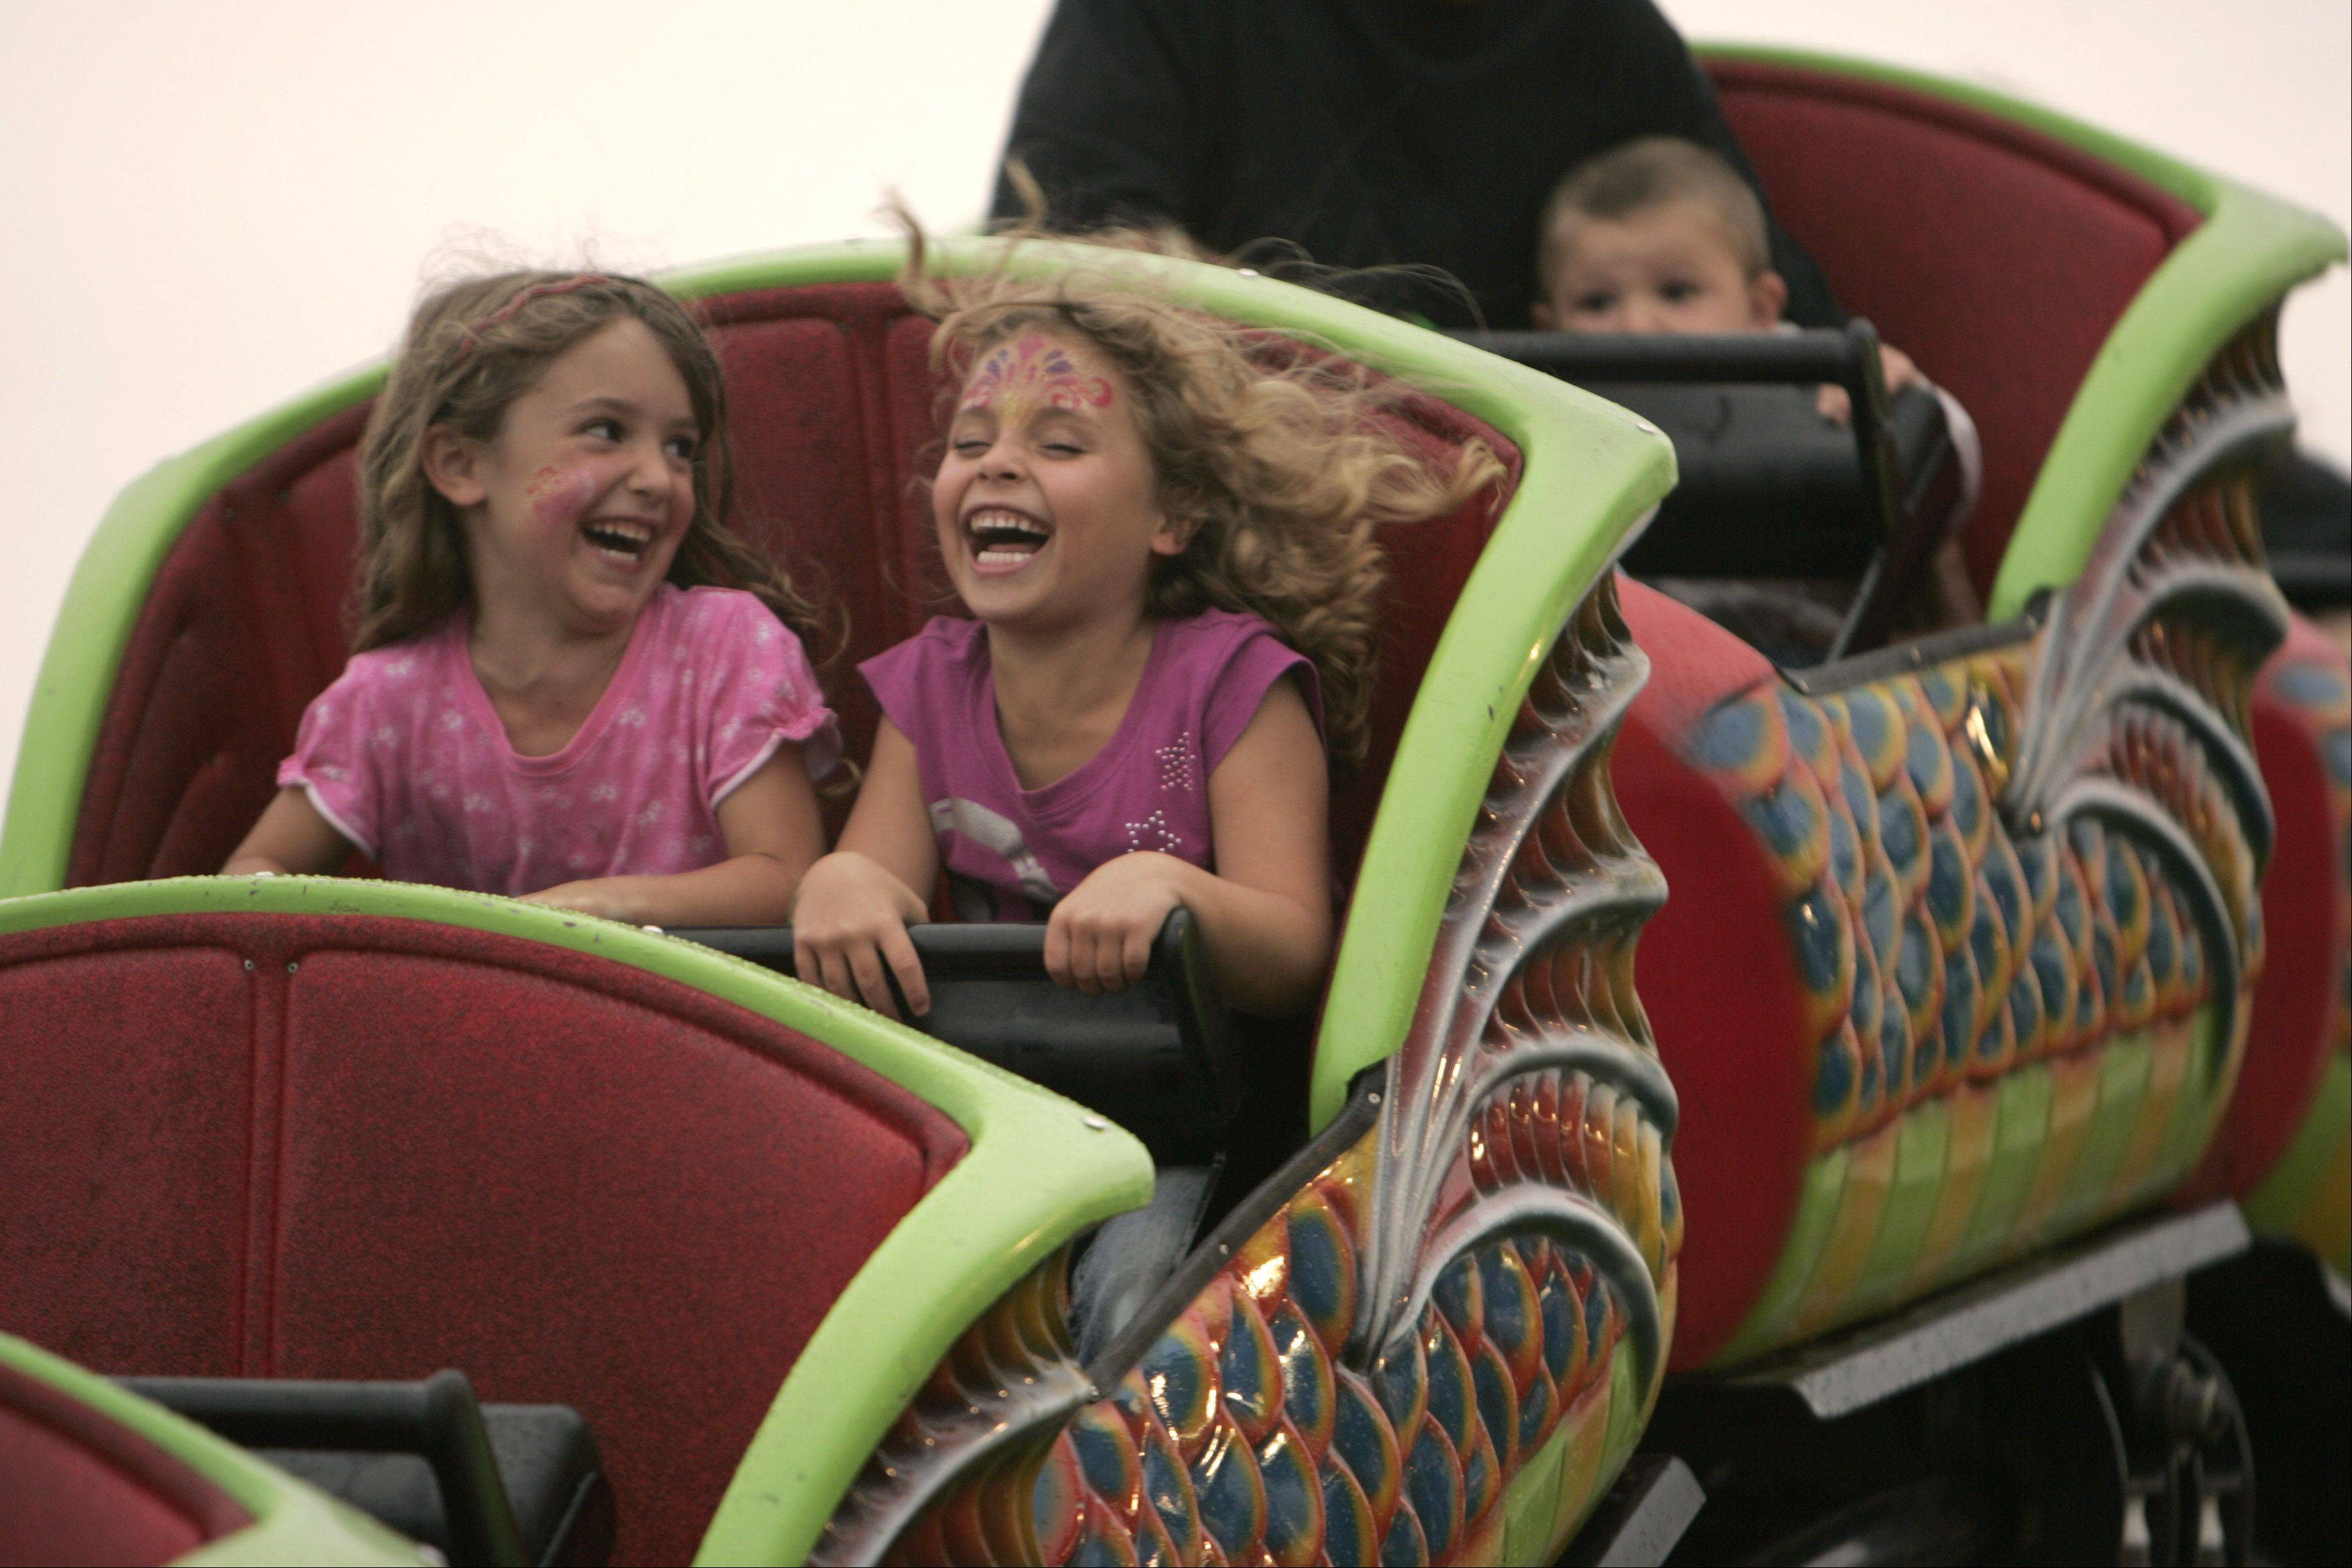 Keira Holtzee, 4, from Woodstock and Kiya Mindard, 5, from Poplar Grove enjoy a carnival ride during the McHenry County Fair in Woodstock.